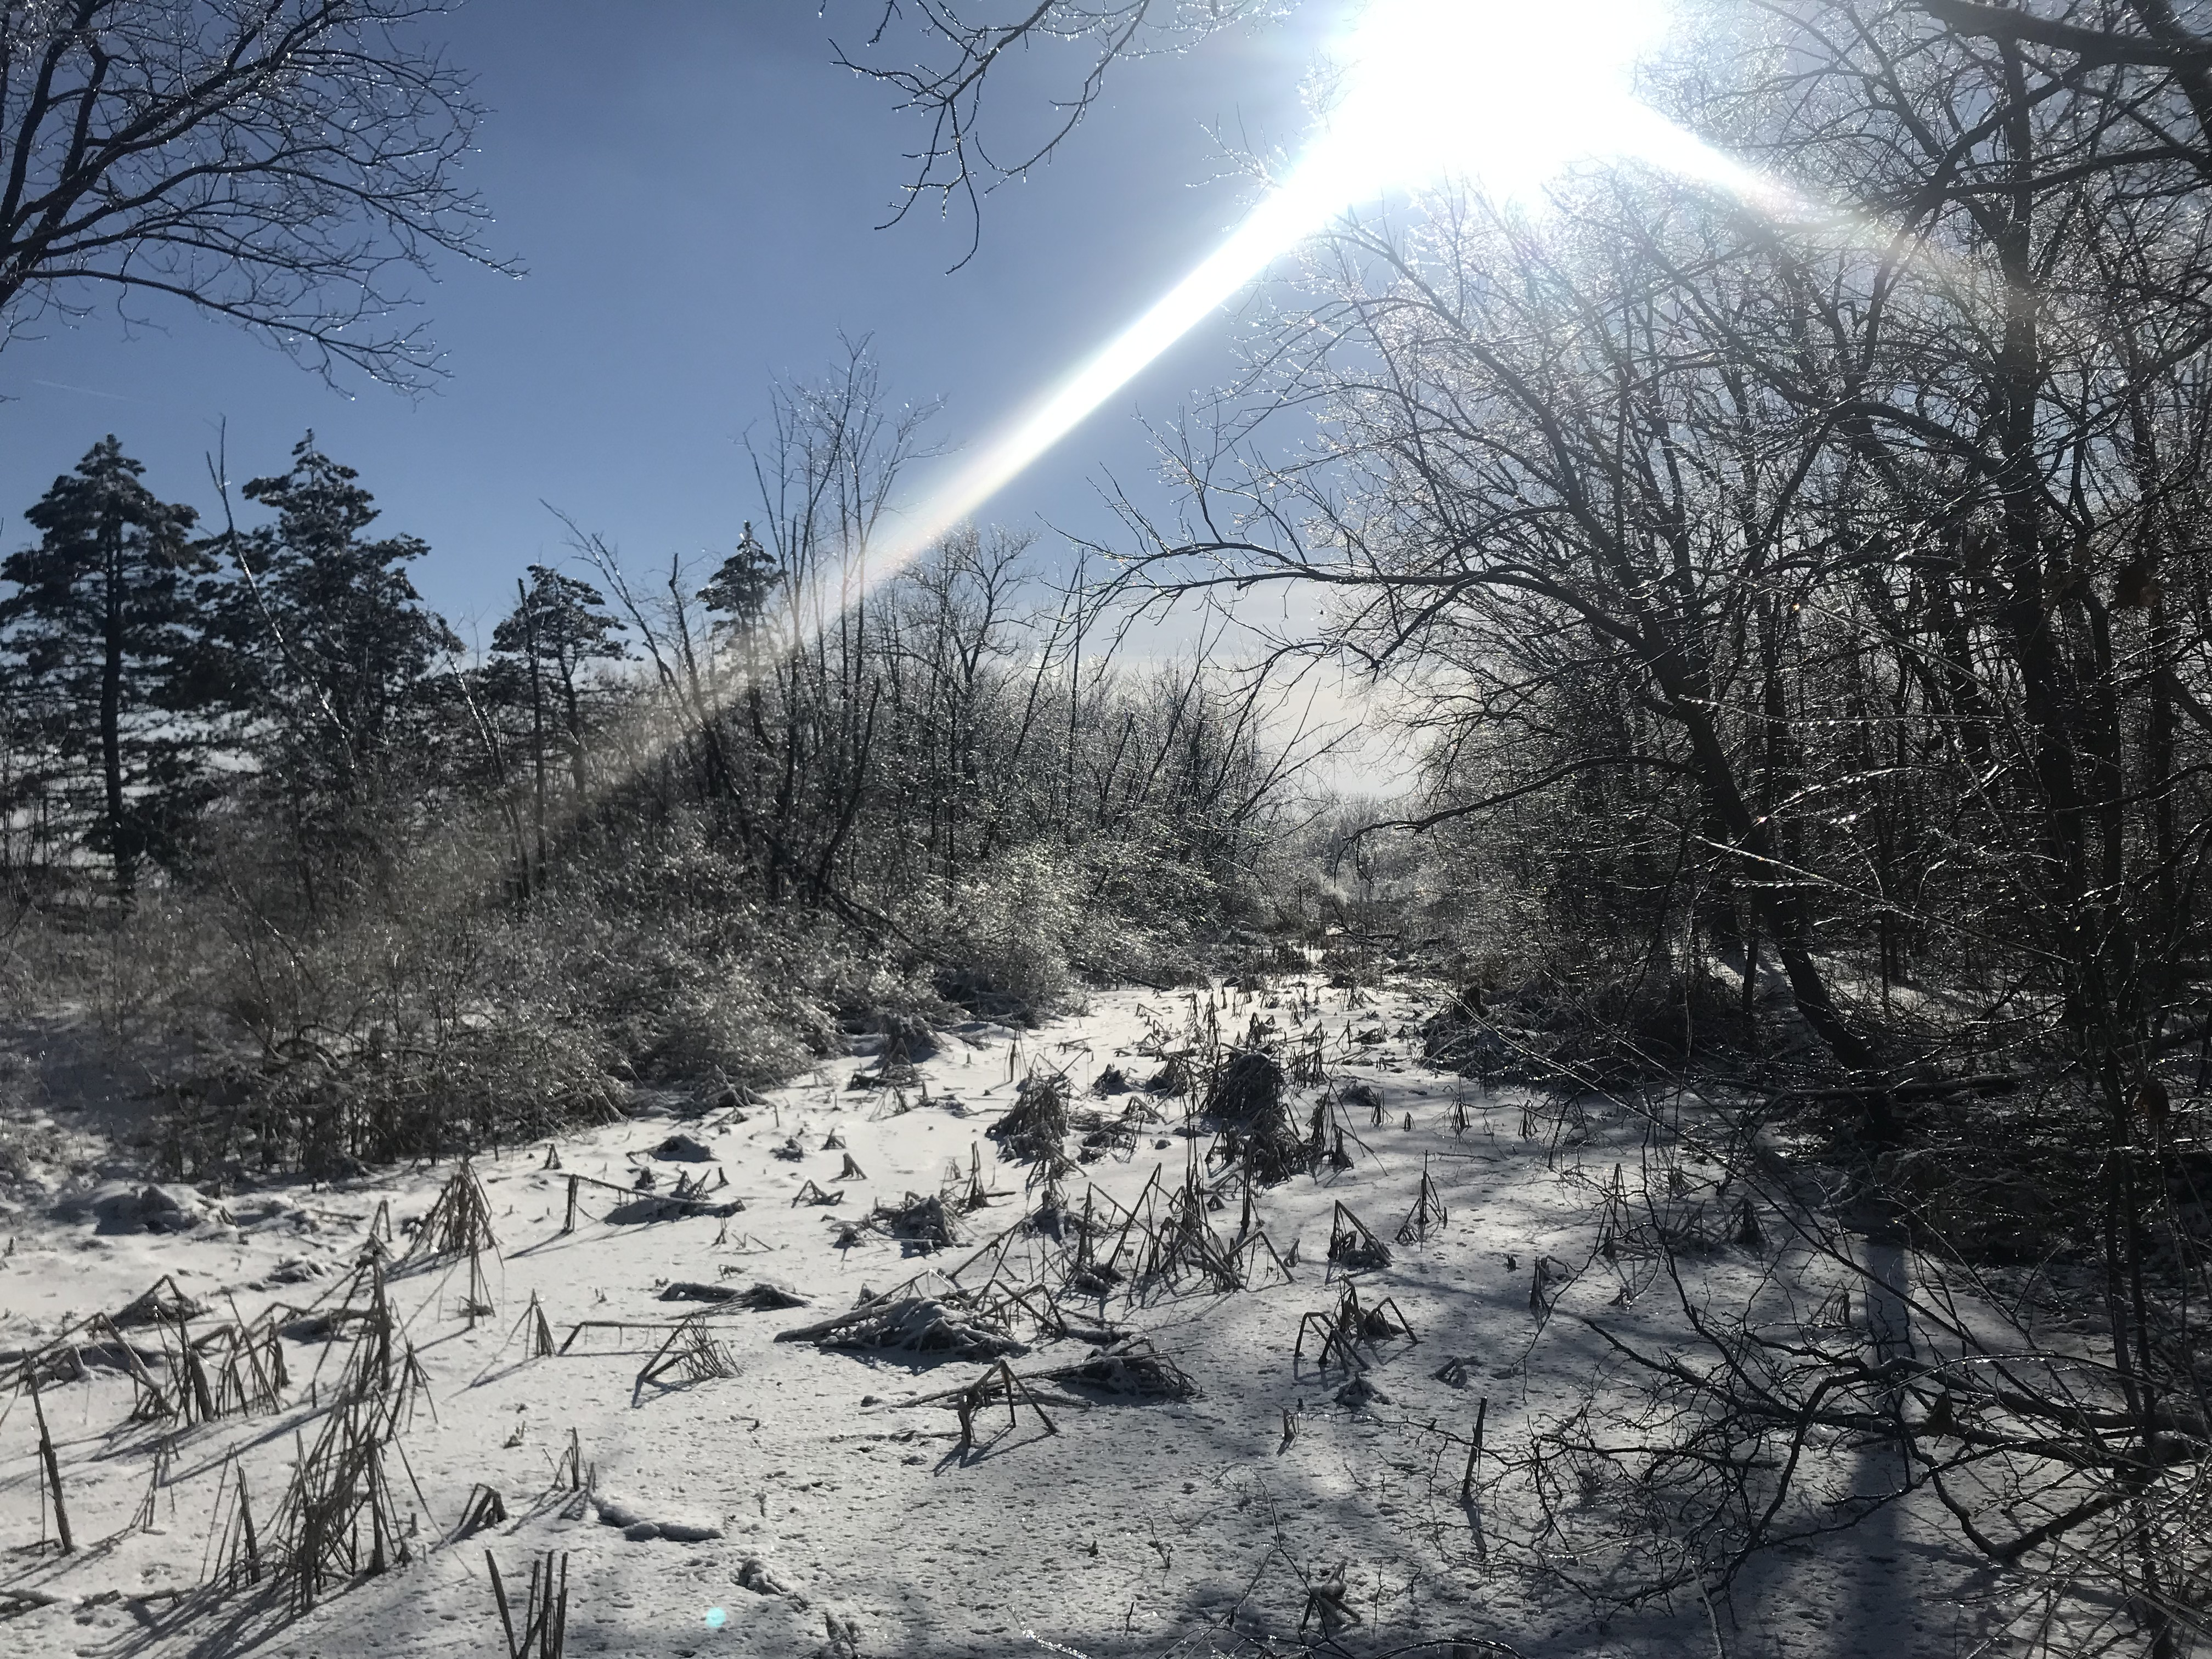 (3/3) The sun is shining, the snow has sheen. nature, landscape, winter, snow, sky, sun tree Photo: Carrie McGivern